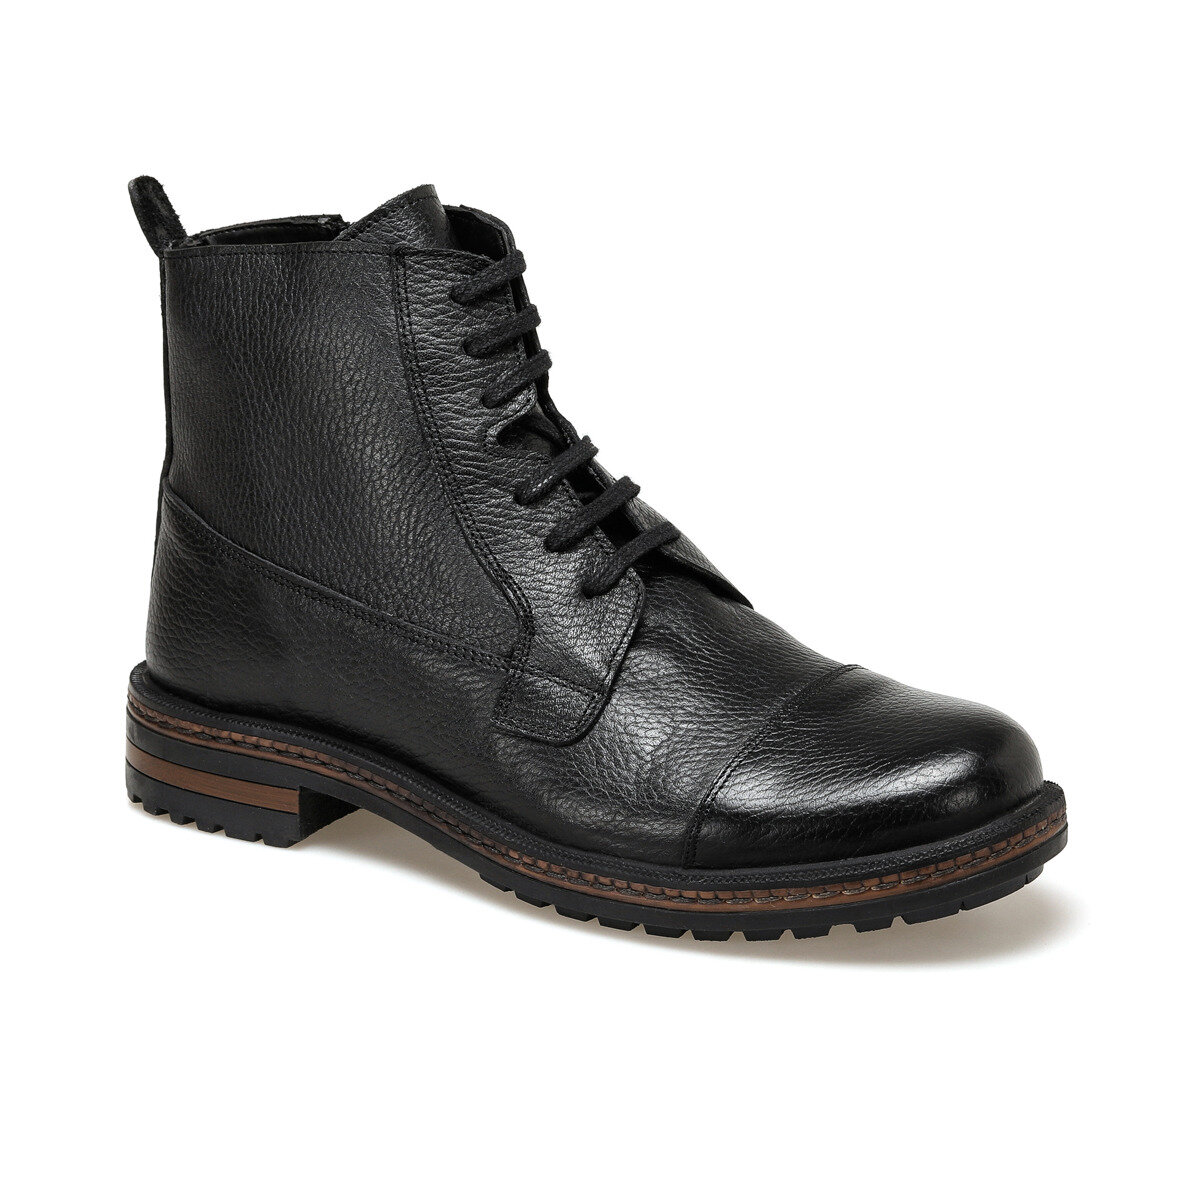 FLO 3406 Black Men Boots Garamond